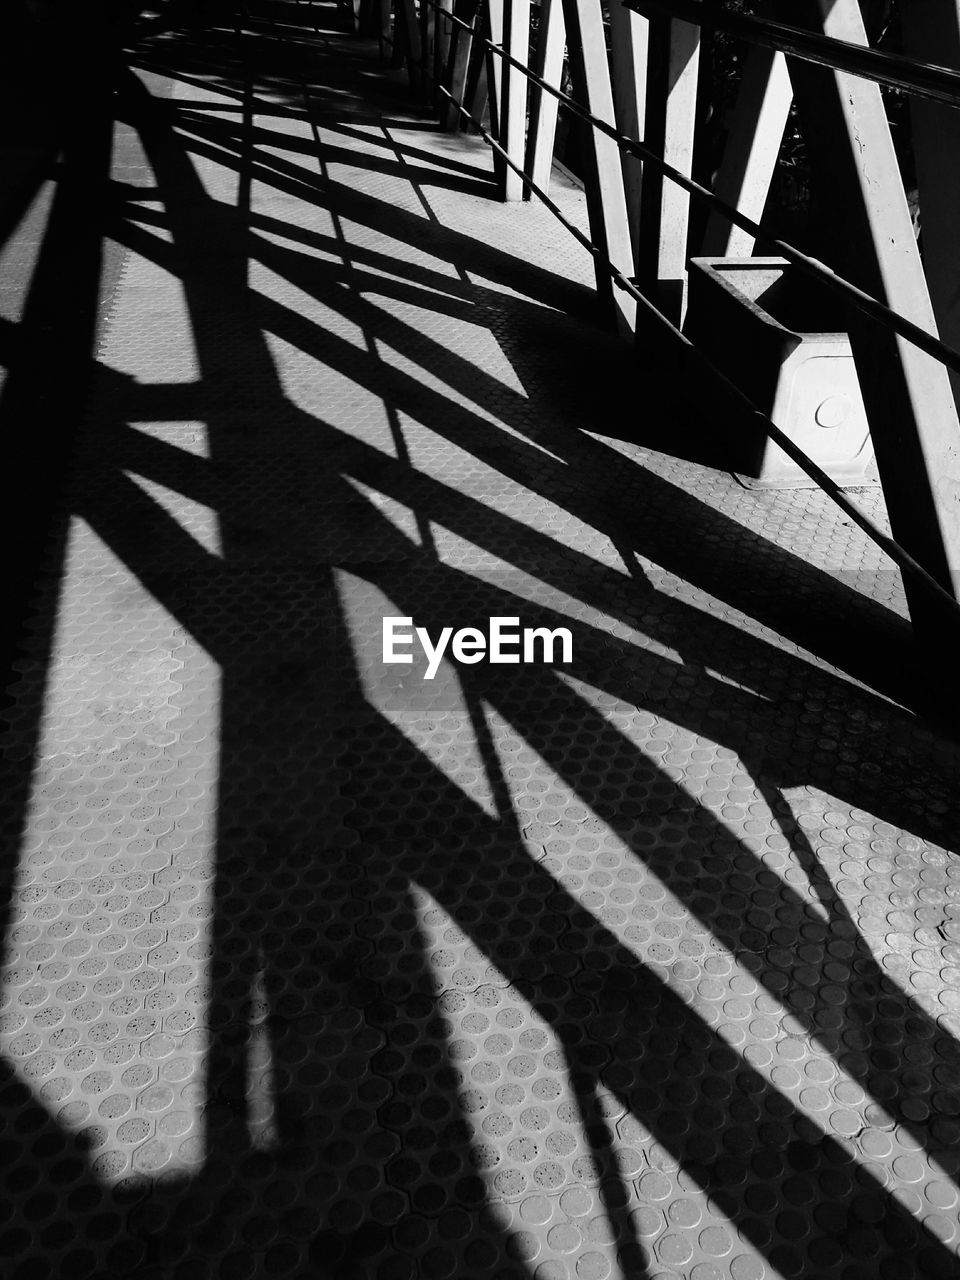 shadow, sunlight, focus on shadow, day, sunny, high angle view, no people, outdoors, close-up